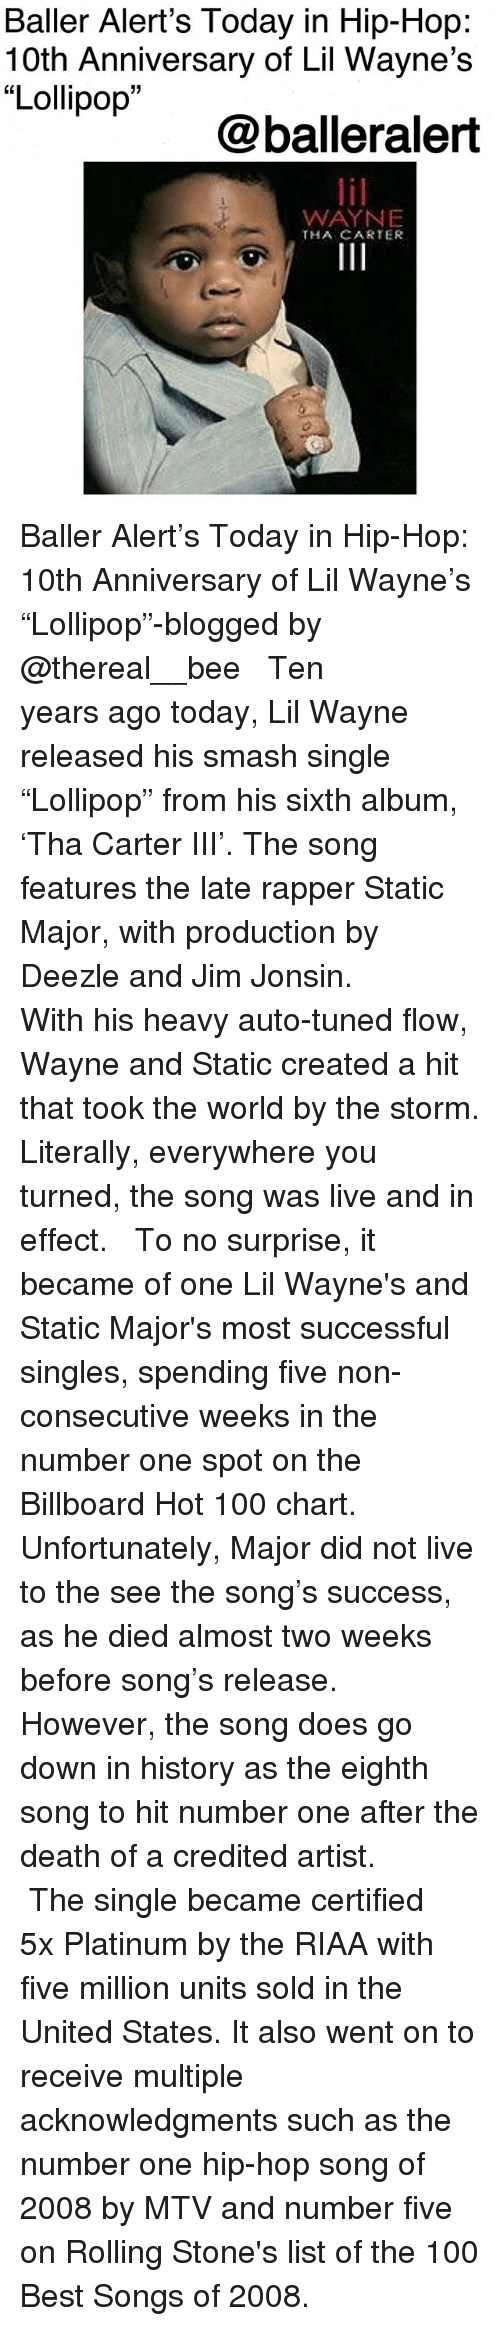 "Anaconda, Baller Alert, and Billboard: Baller Alert's Today in Hip-Hop:  10th Anniversary of Lil Wayne's  ""Lollipop  09  @balleralert  WAYNE  THA CARTER Baller Alert's Today in Hip-Hop: 10th Anniversary of Lil Wayne's ""Lollipop""-blogged by @thereal__bee ⠀⠀⠀⠀⠀⠀⠀⠀⠀ ⠀⠀ Ten years ago today, Lil Wayne released his smash single ""Lollipop"" from his sixth album, 'Tha Carter III'. The song features the late rapper Static Major, with production by Deezle and Jim Jonsin. ⠀⠀⠀⠀⠀⠀⠀⠀⠀ ⠀⠀ With his heavy auto-tuned flow, Wayne and Static created a hit that took the world by the storm. Literally, everywhere you turned, the song was live and in effect. ⠀⠀⠀⠀⠀⠀⠀⠀⠀ ⠀⠀ To no surprise, it became of one Lil Wayne's and Static Major's most successful singles, spending five non-consecutive weeks in the number one spot on the Billboard Hot 100 chart. ⠀⠀⠀⠀⠀⠀⠀⠀⠀ ⠀⠀ Unfortunately, Major did not live to the see the song's success, as he died almost two weeks before song's release. However, the song does go down in history as the eighth song to hit number one after the death of a credited artist. ⠀⠀⠀⠀⠀⠀⠀⠀⠀ ⠀⠀ The single became certified 5x Platinum by the RIAA with five million units sold in the United States. It also went on to receive multiple acknowledgments such as the number one hip-hop song of 2008 by MTV and number five on Rolling Stone's list of the 100 Best Songs of 2008."